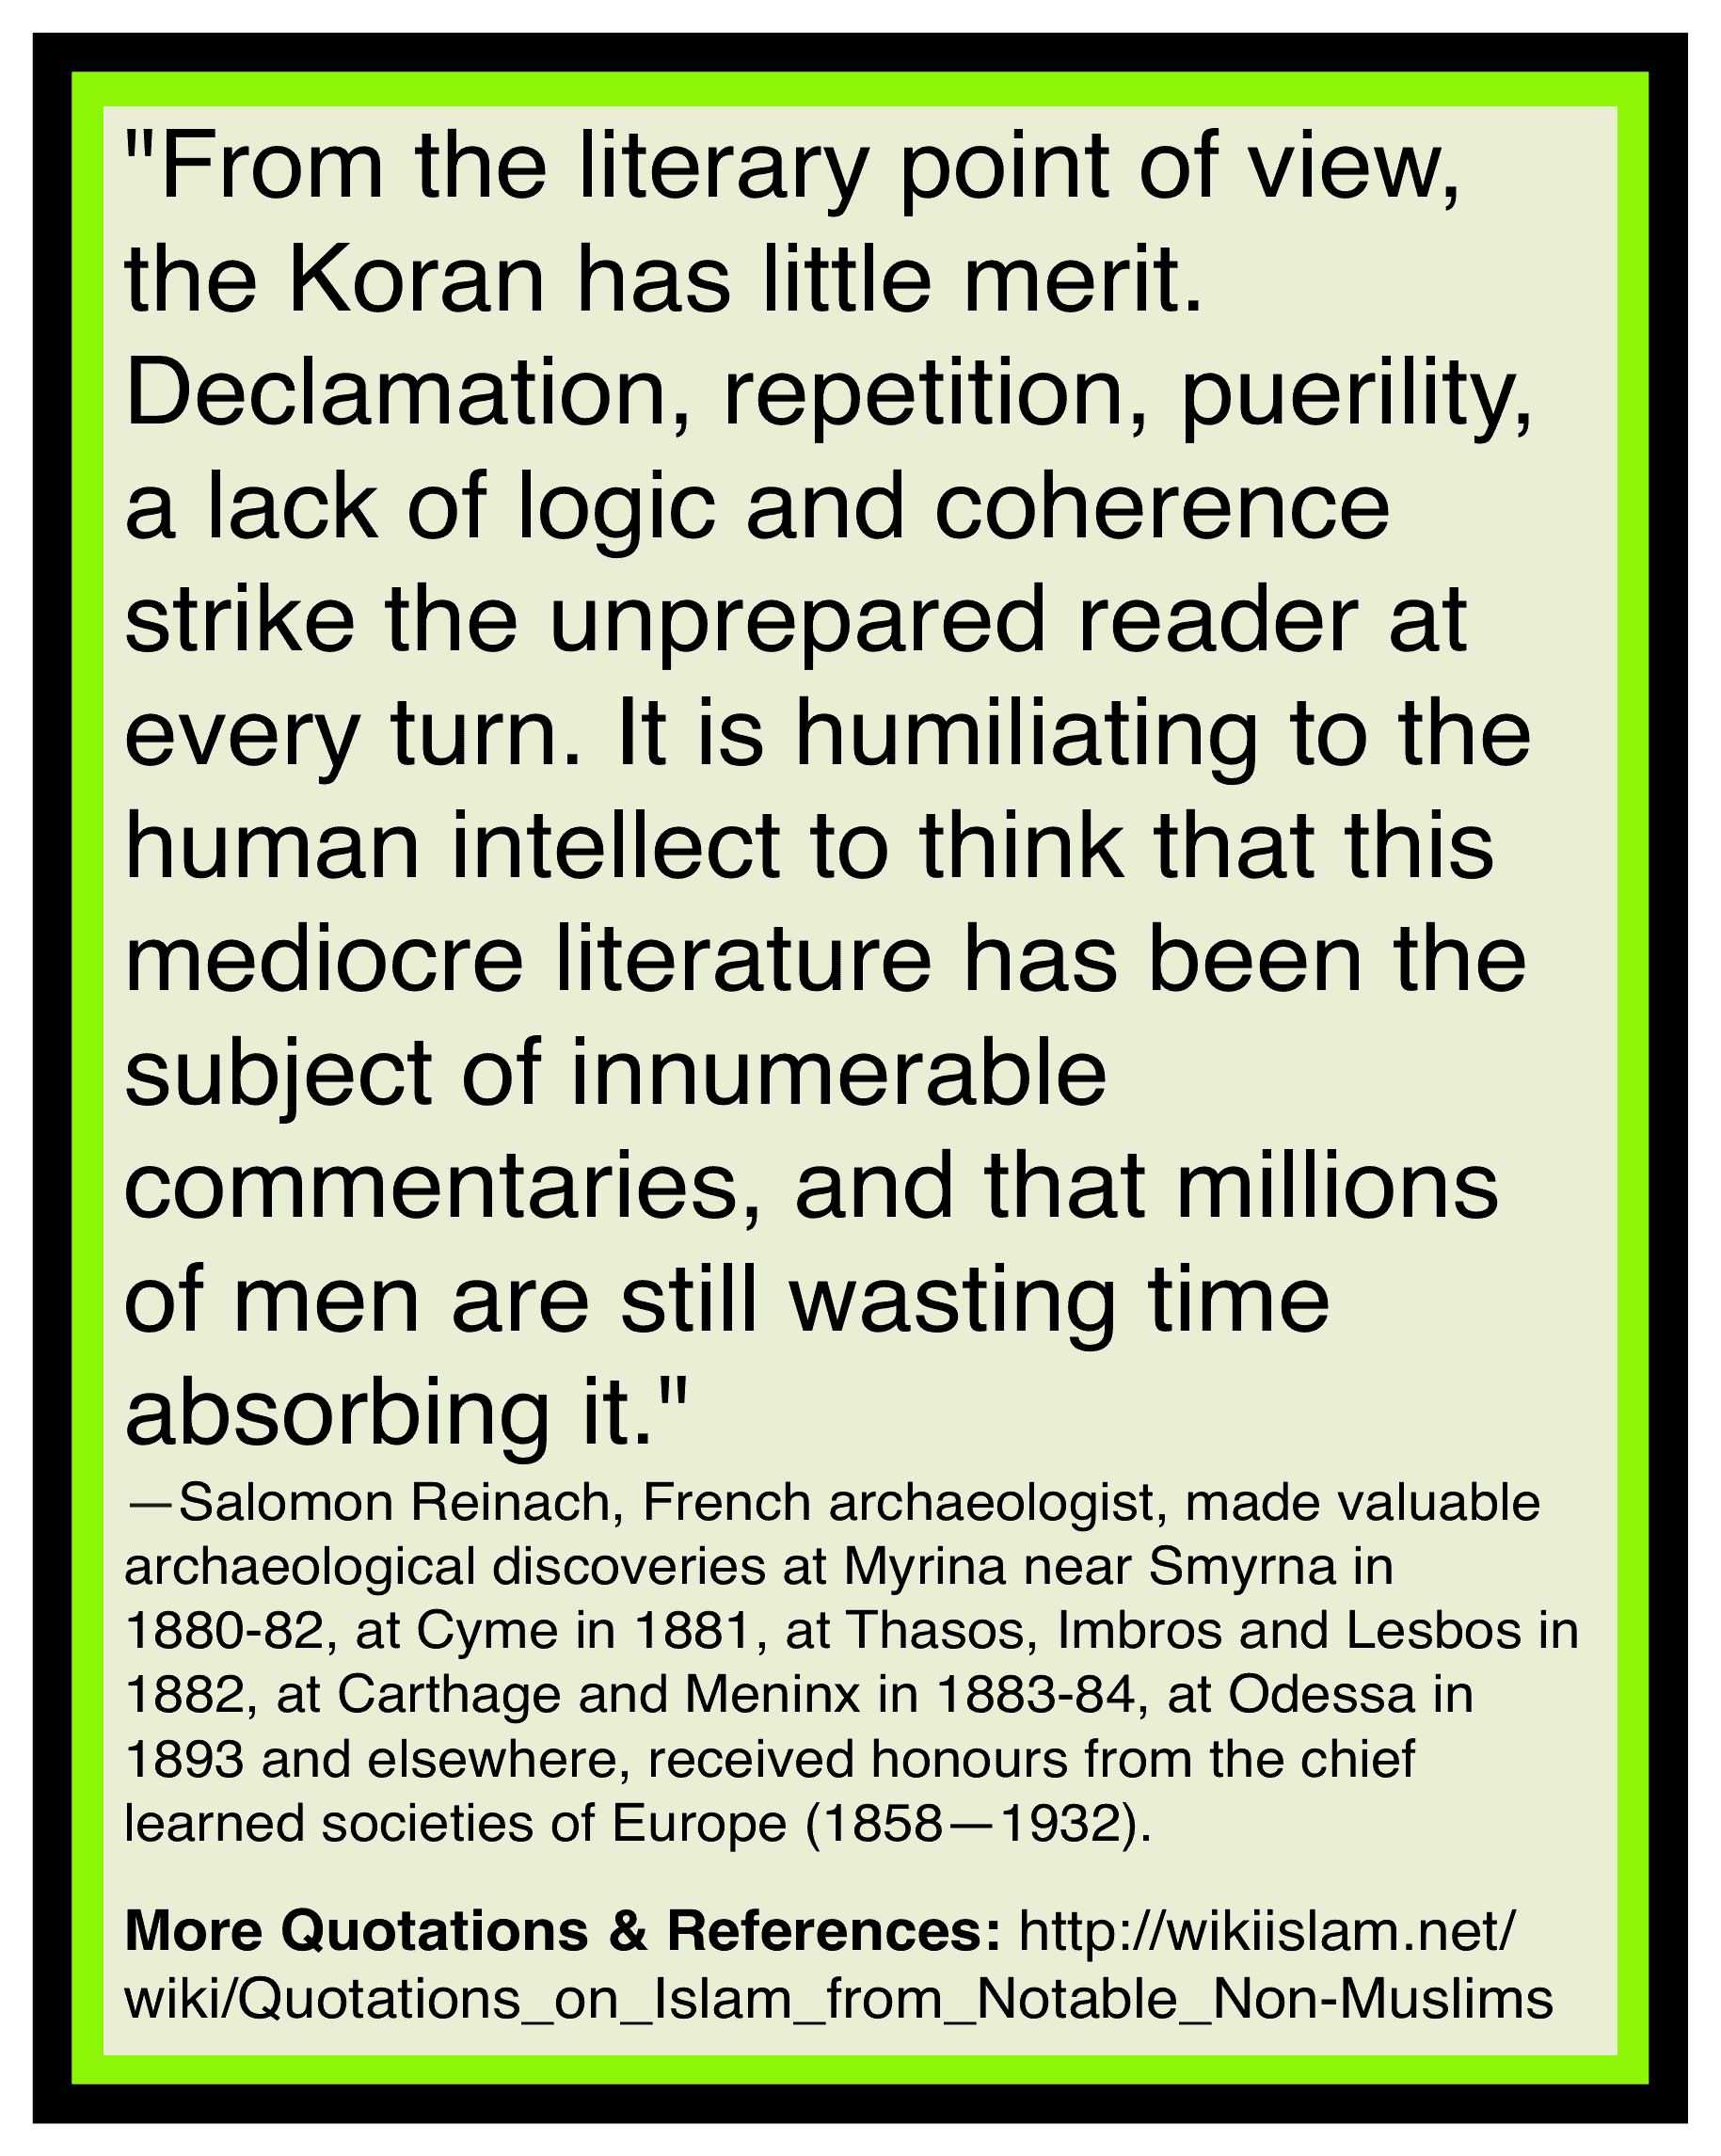 Quran is a literary disaster